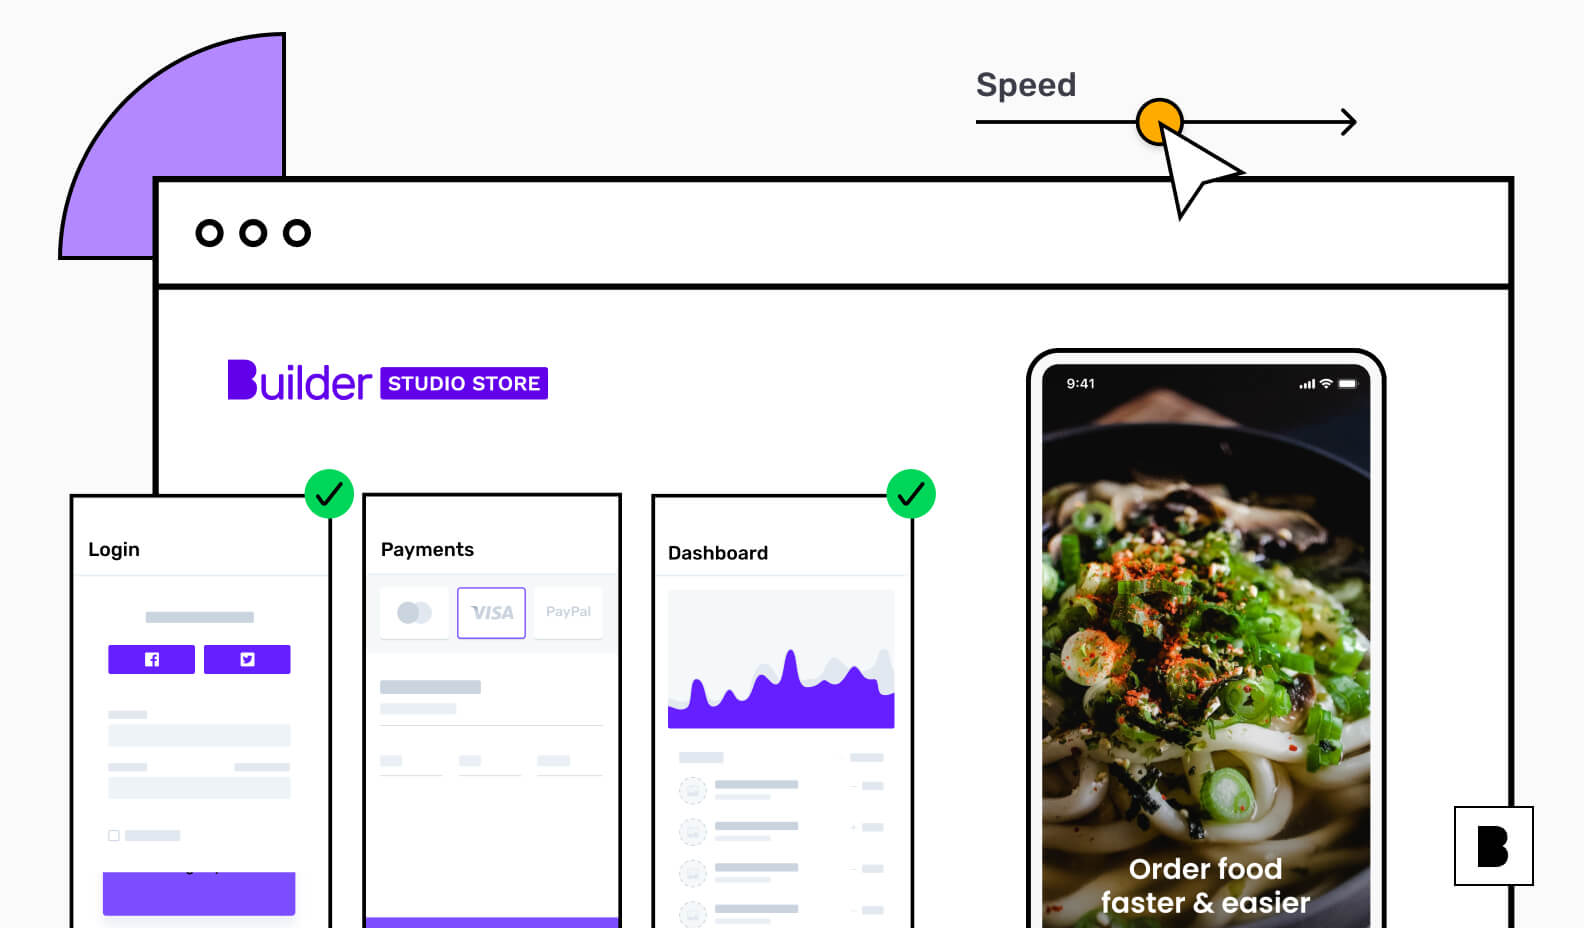 Restaurant app development illustration with Builder Studio Store